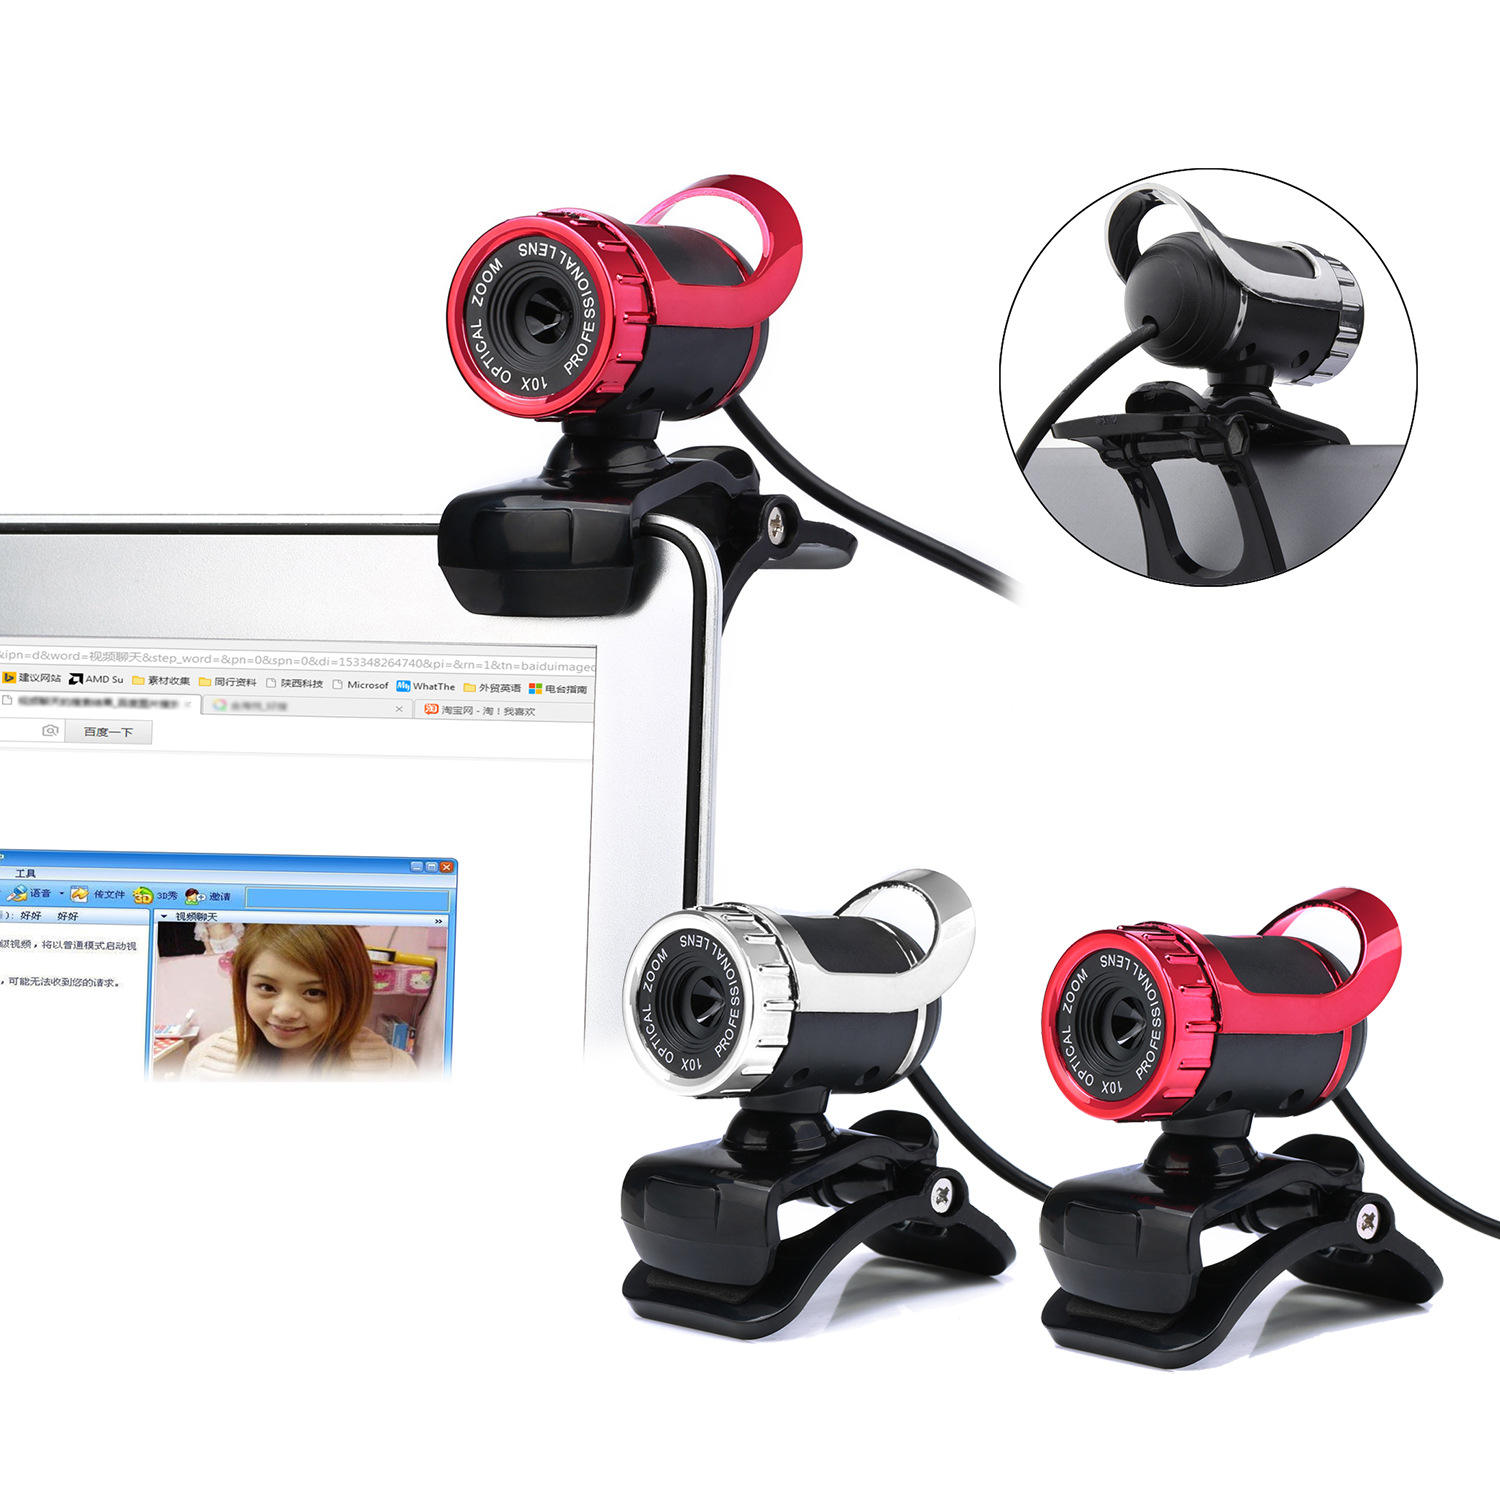 USB 2.0 Webcam 12.0 Megapixels Digital Video HD Web Camera mit Built-in Sound Absorption Microphone für Computer PC Laptop